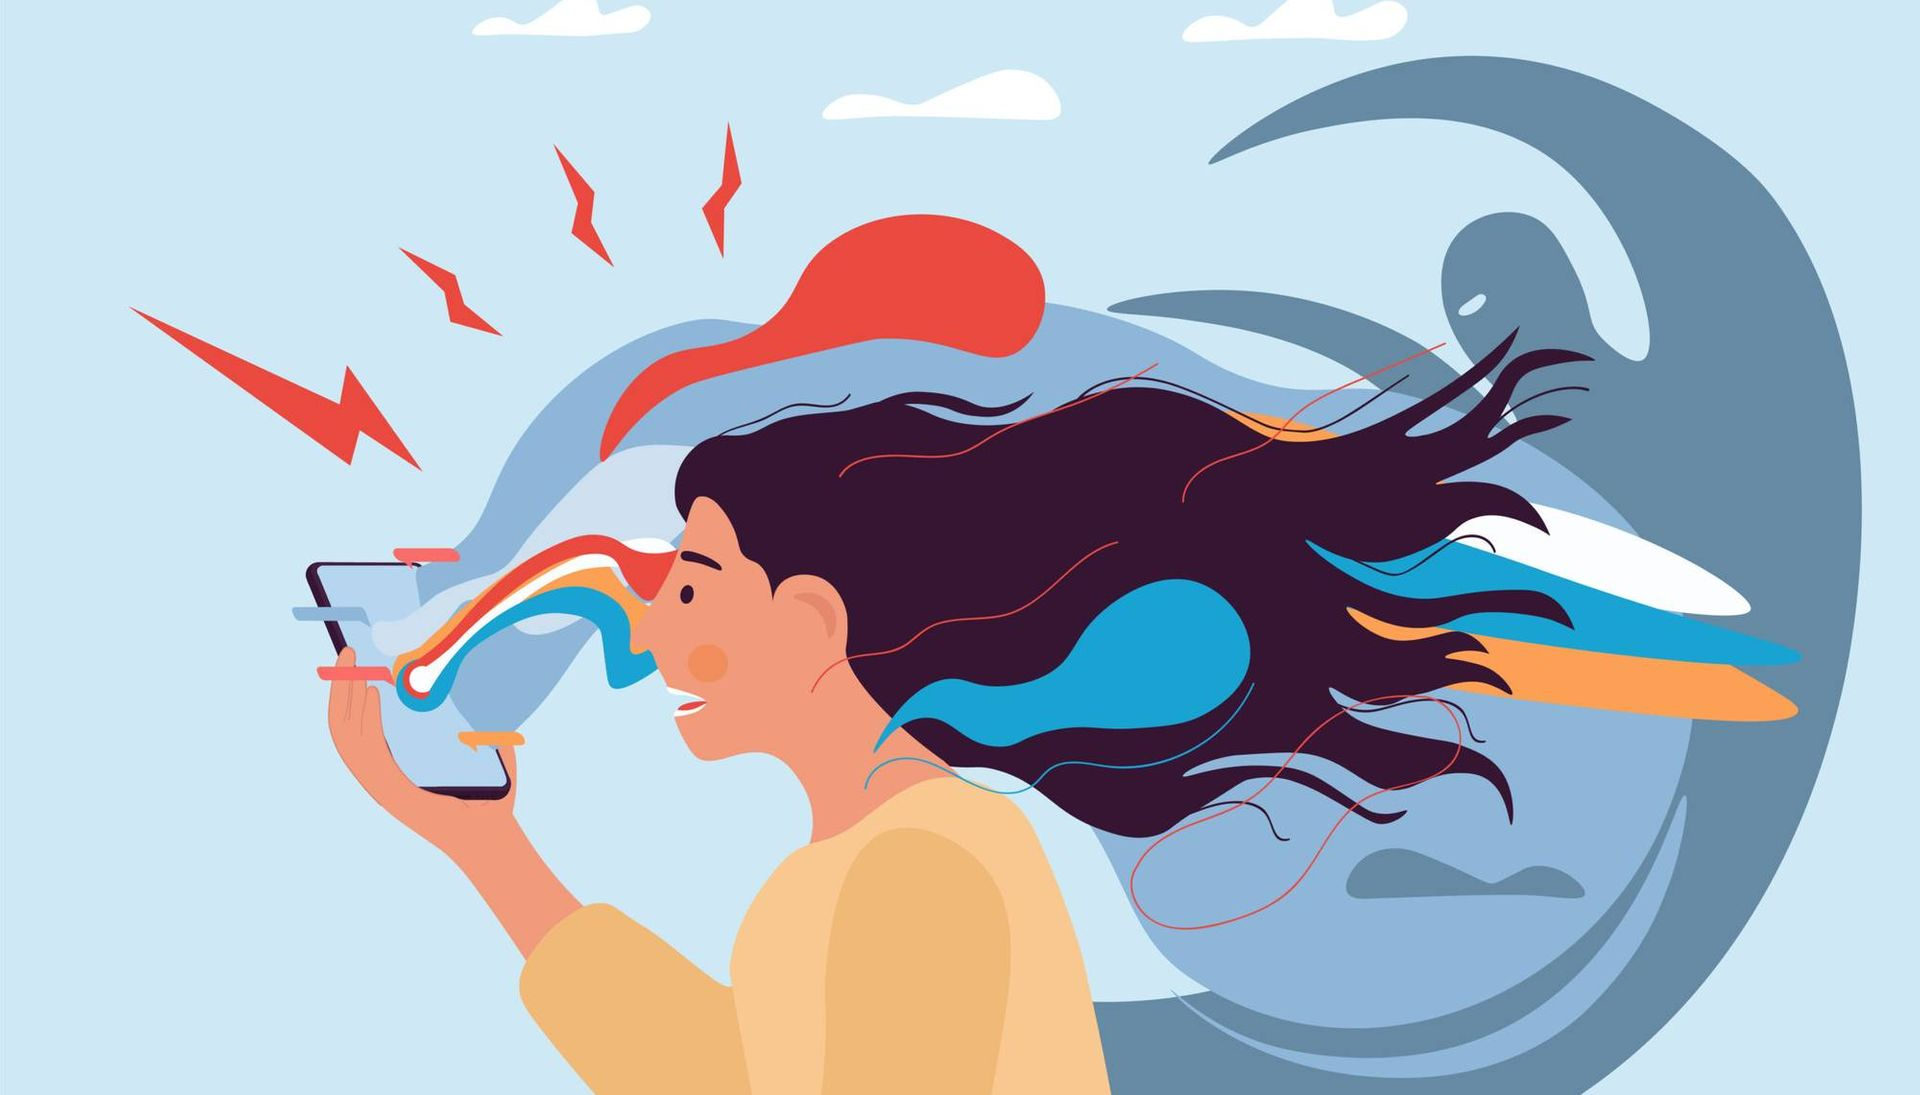 Illustration of anxious woman looking at phone surrounded by negative energy